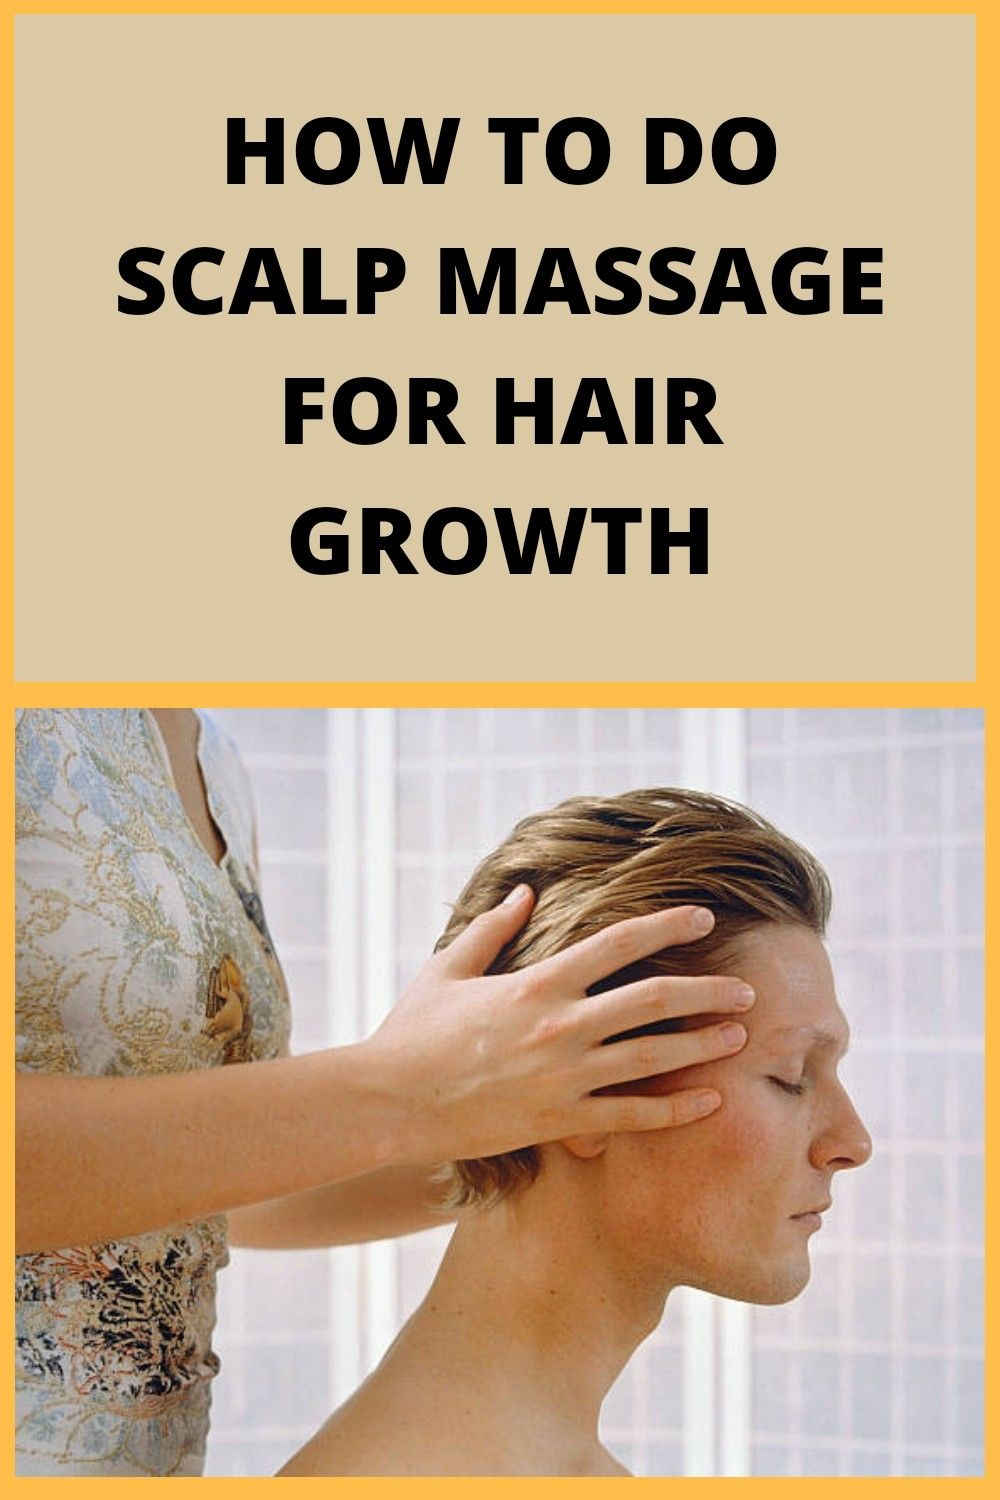 17+ Massaging head to stimulate hair growth ideas in 2021